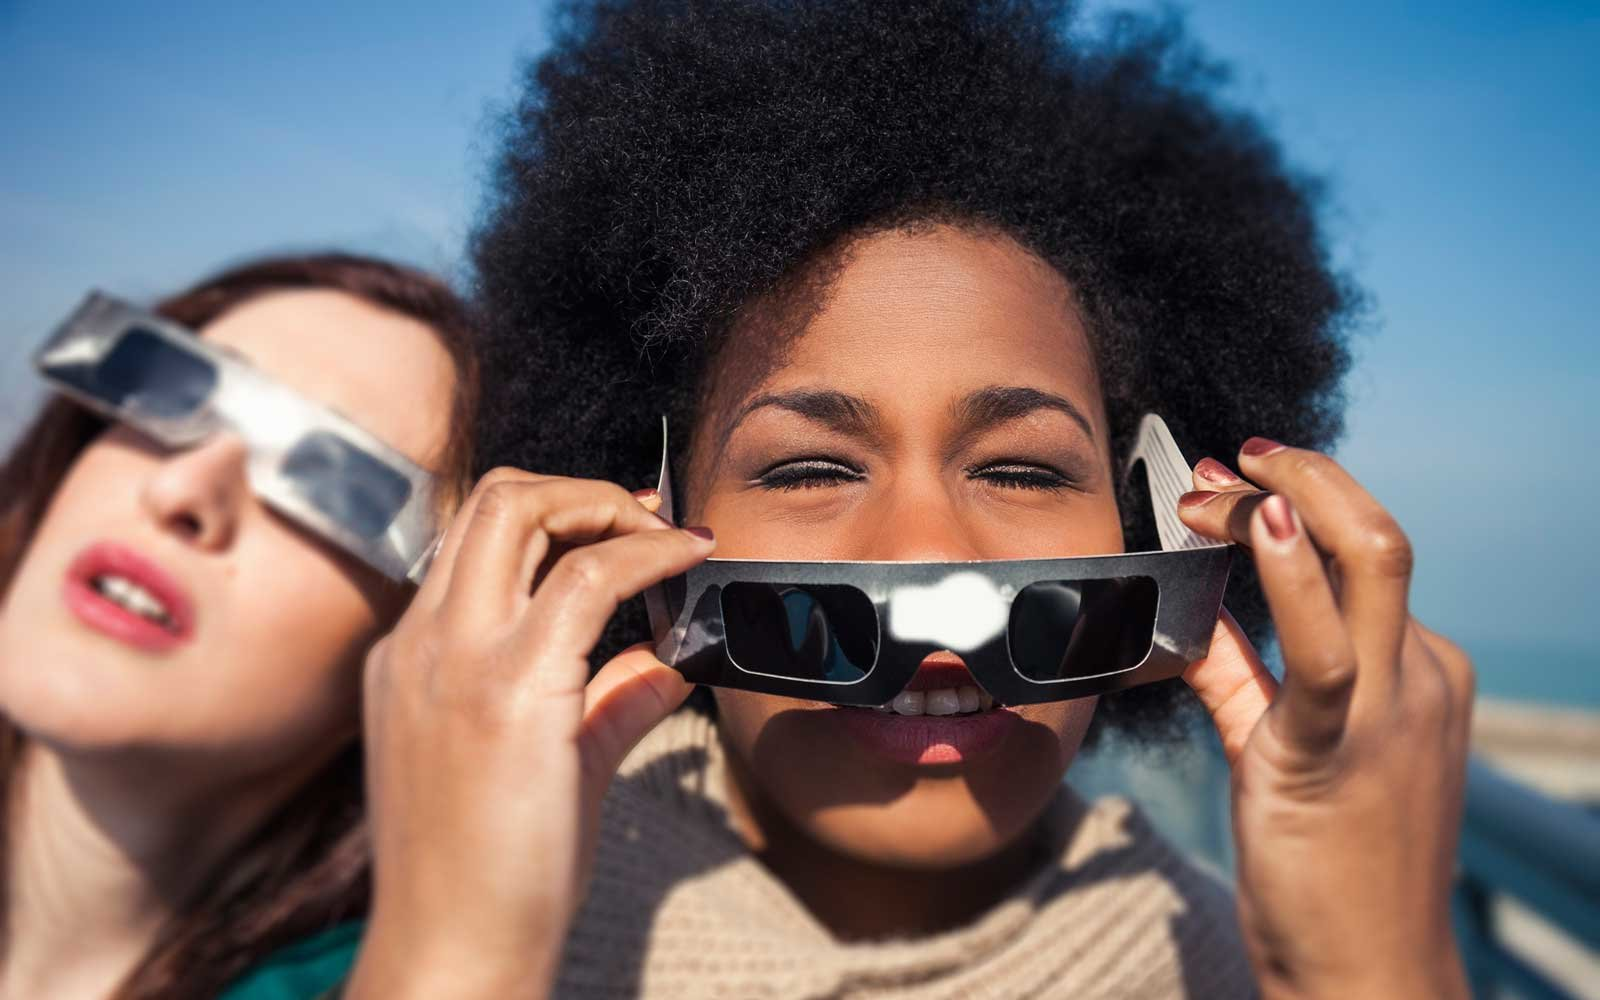 Group of female friends have fun together during a solar eclipse event.